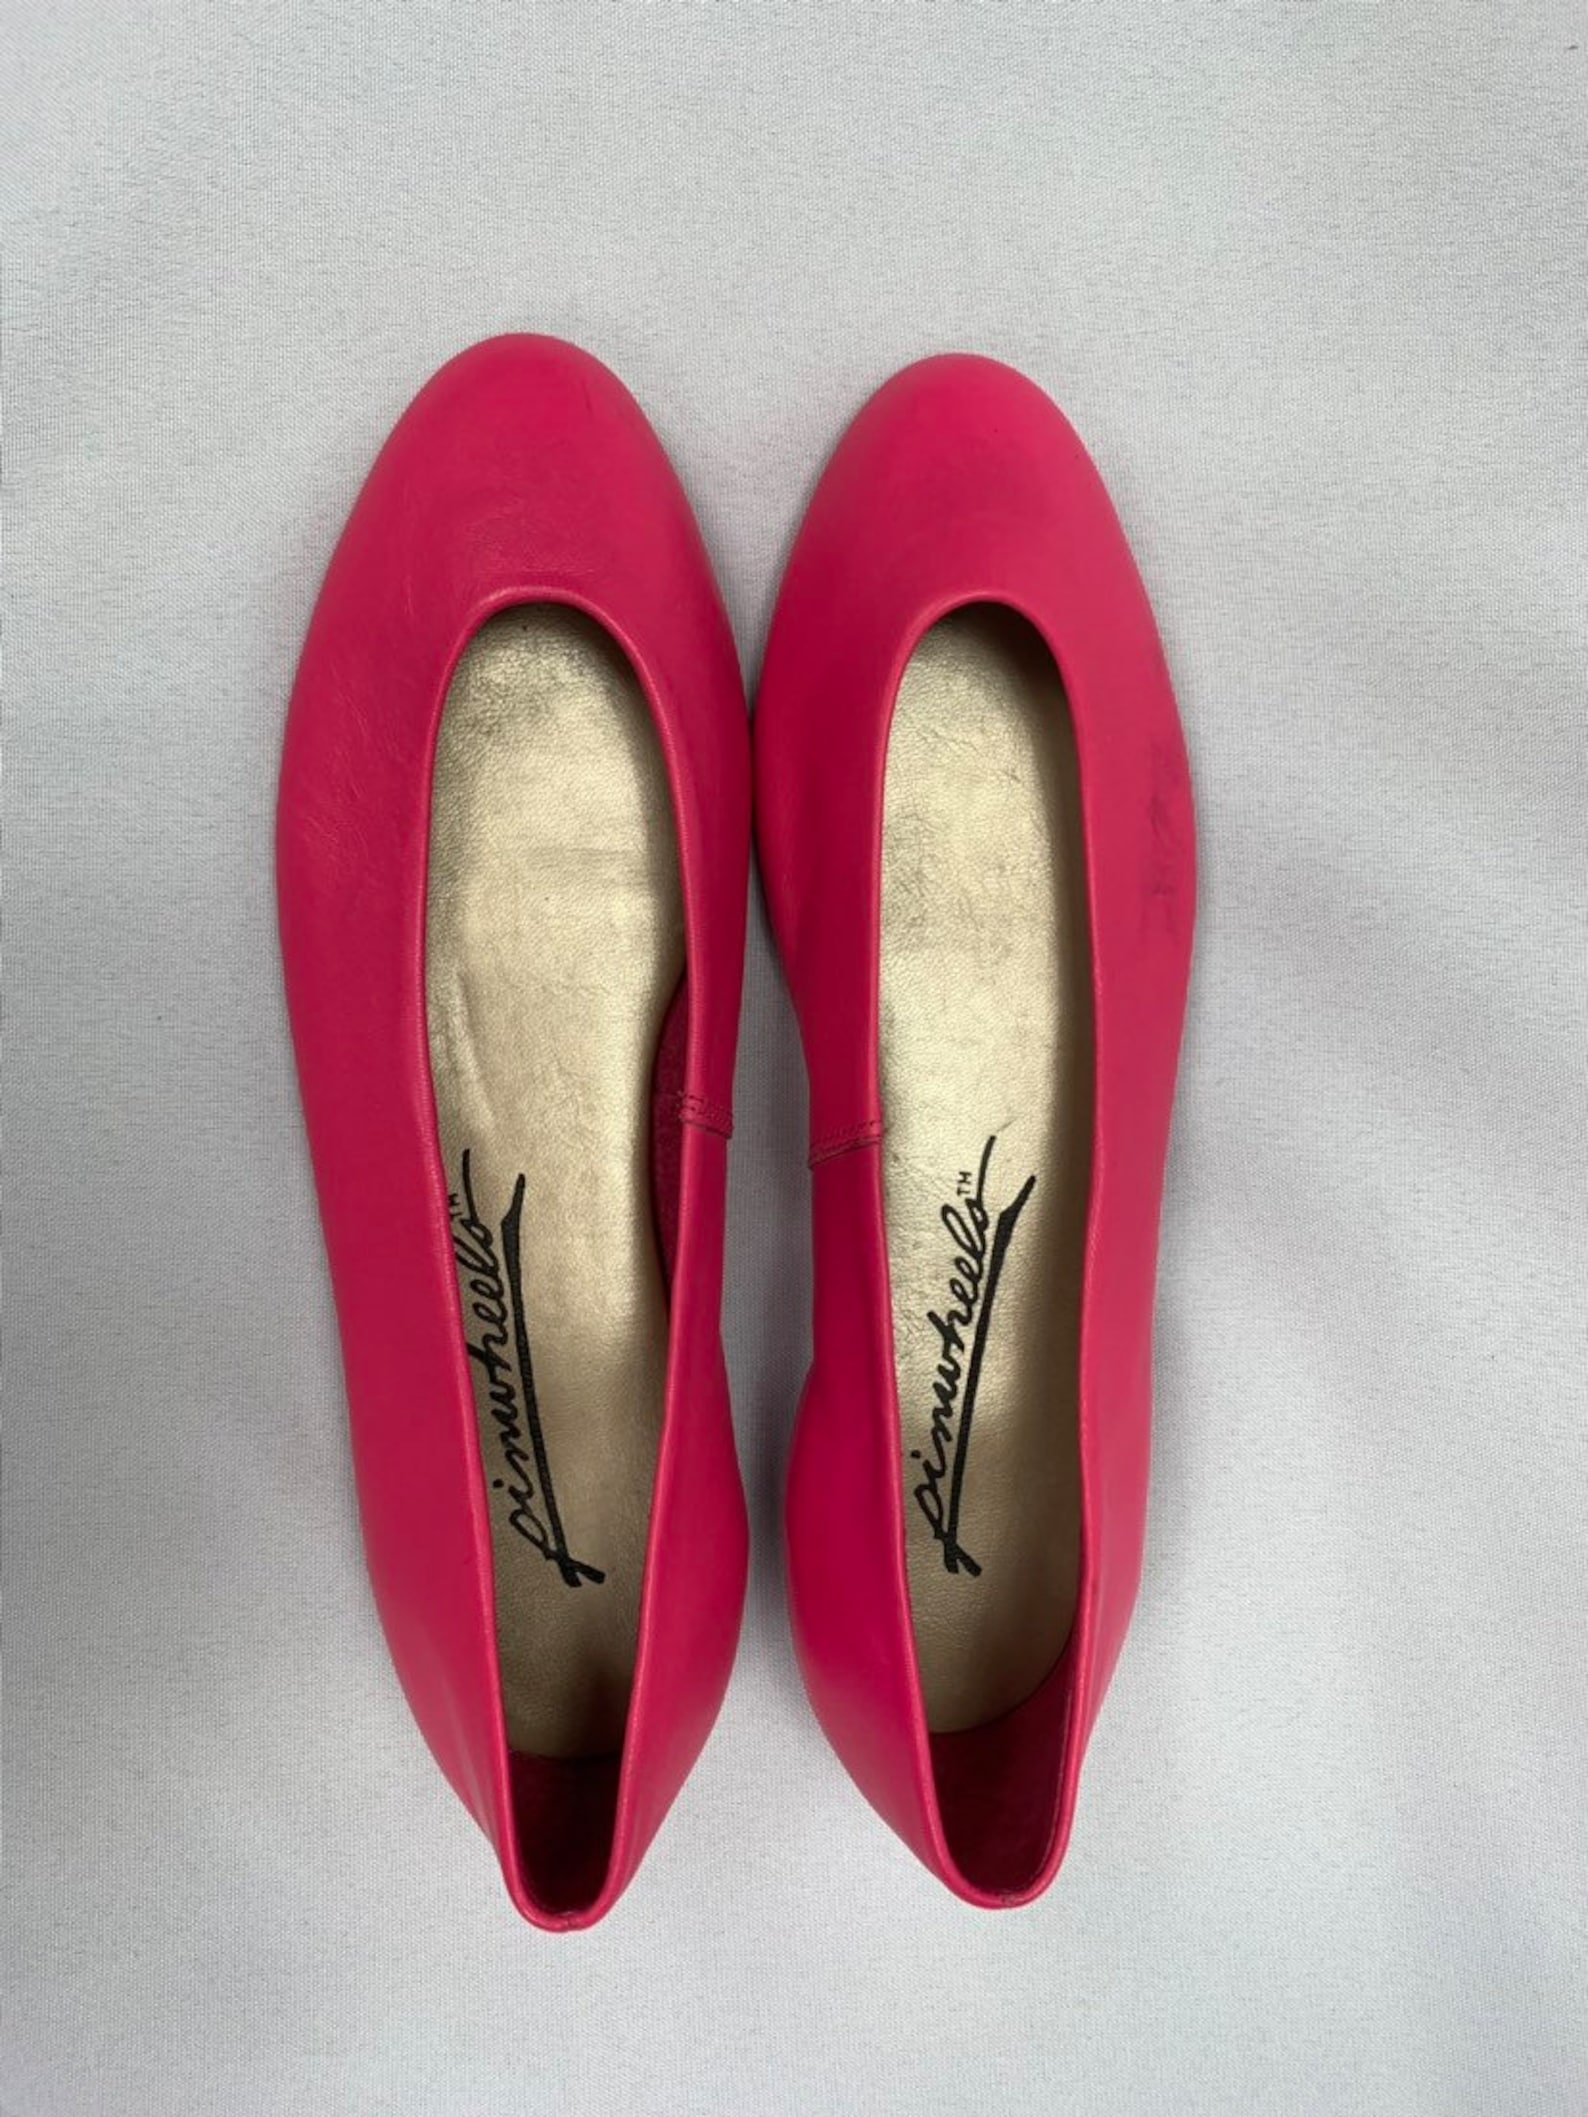 80s neon pink leather ballet flats by pinwheels, slip on flats, fuschia, bright pink, hot pink, 80s party shoes, retro, vintage